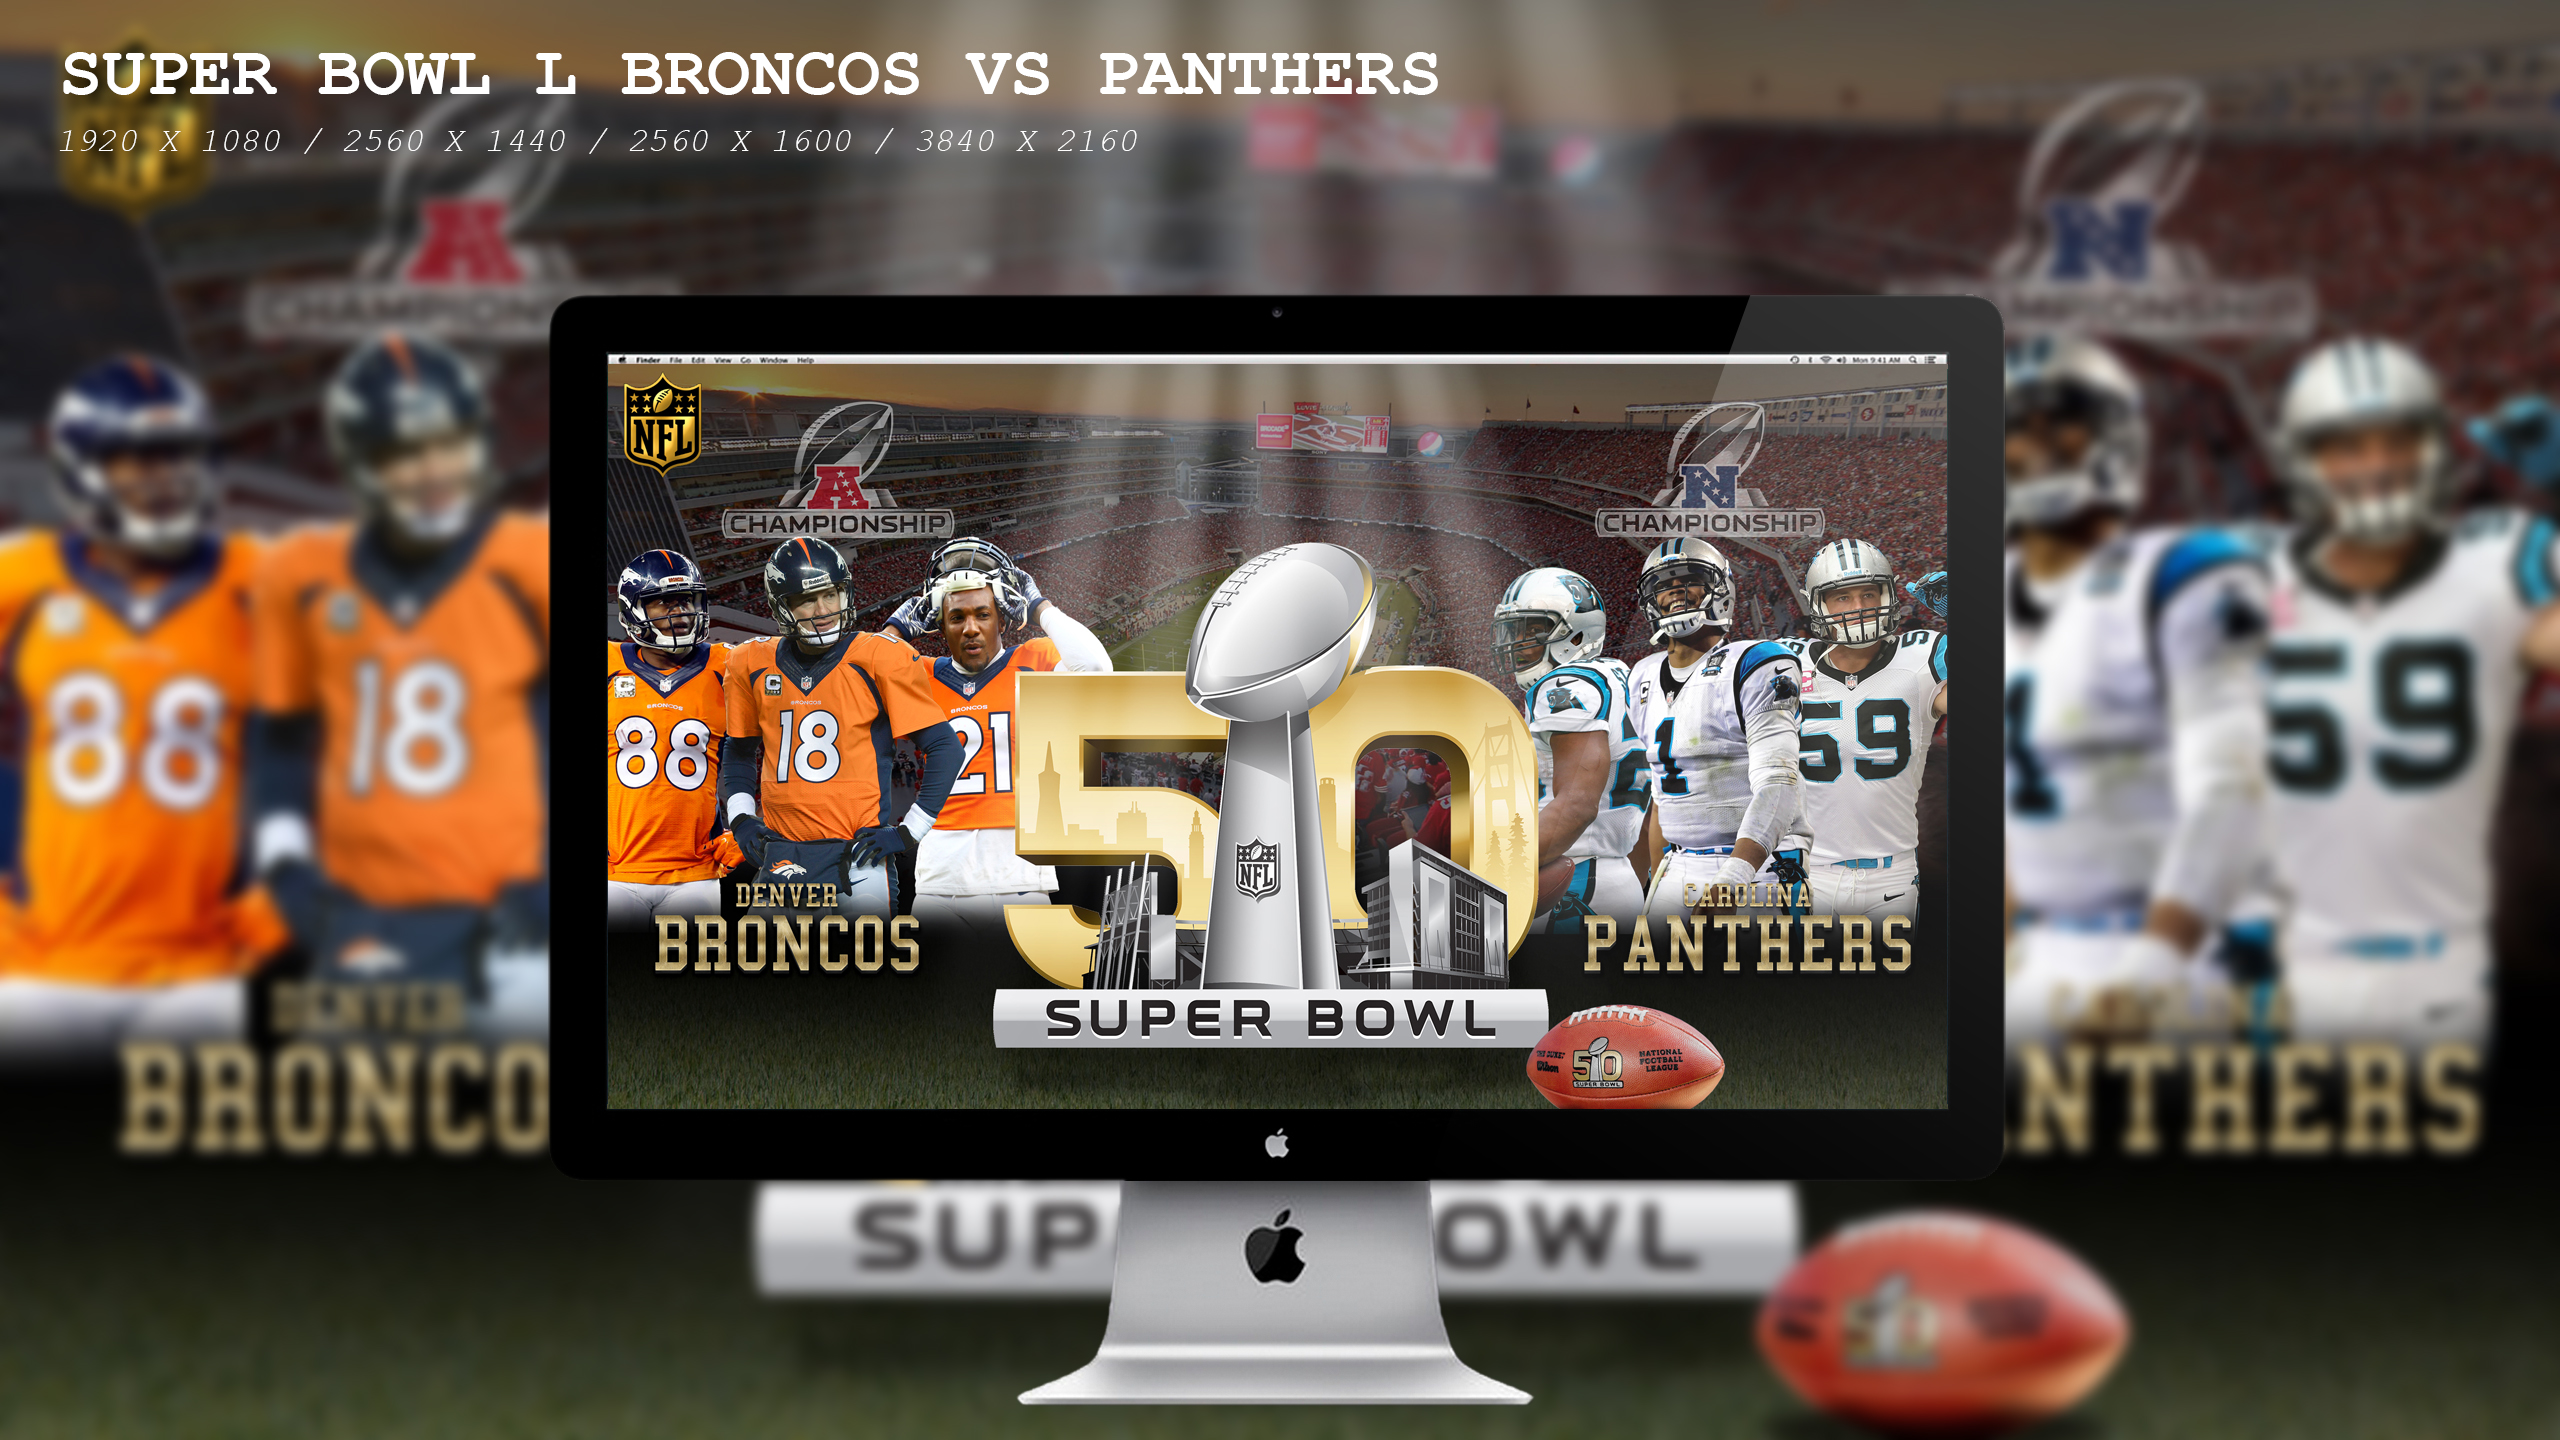 Super Bowl L Broncos Vs Panthers Wallpaper HD by BeAware8 on